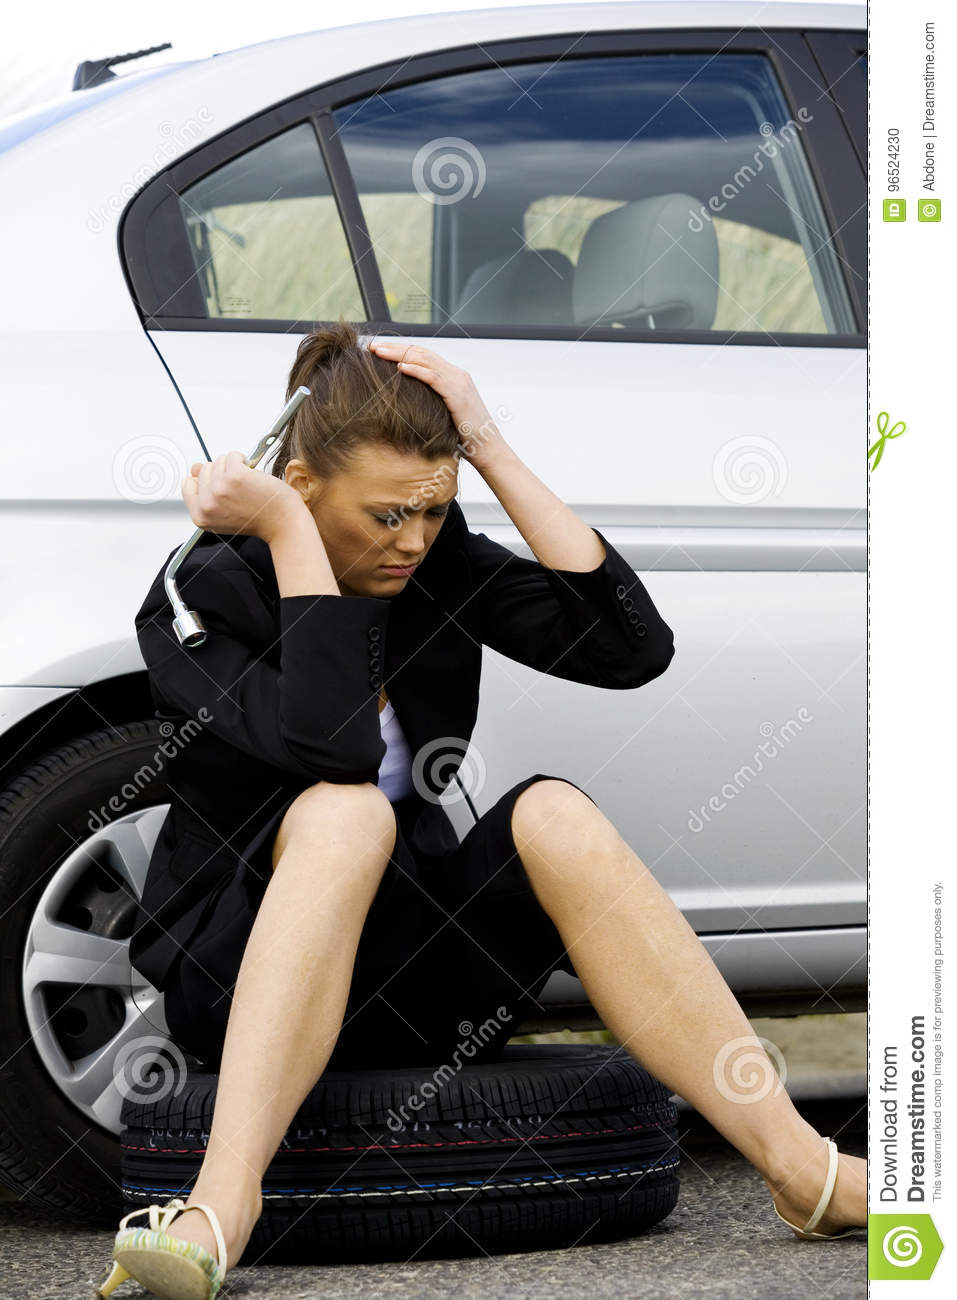 Businesswoman In A Car Failure Stock Photo - Image of broken, fixing ...